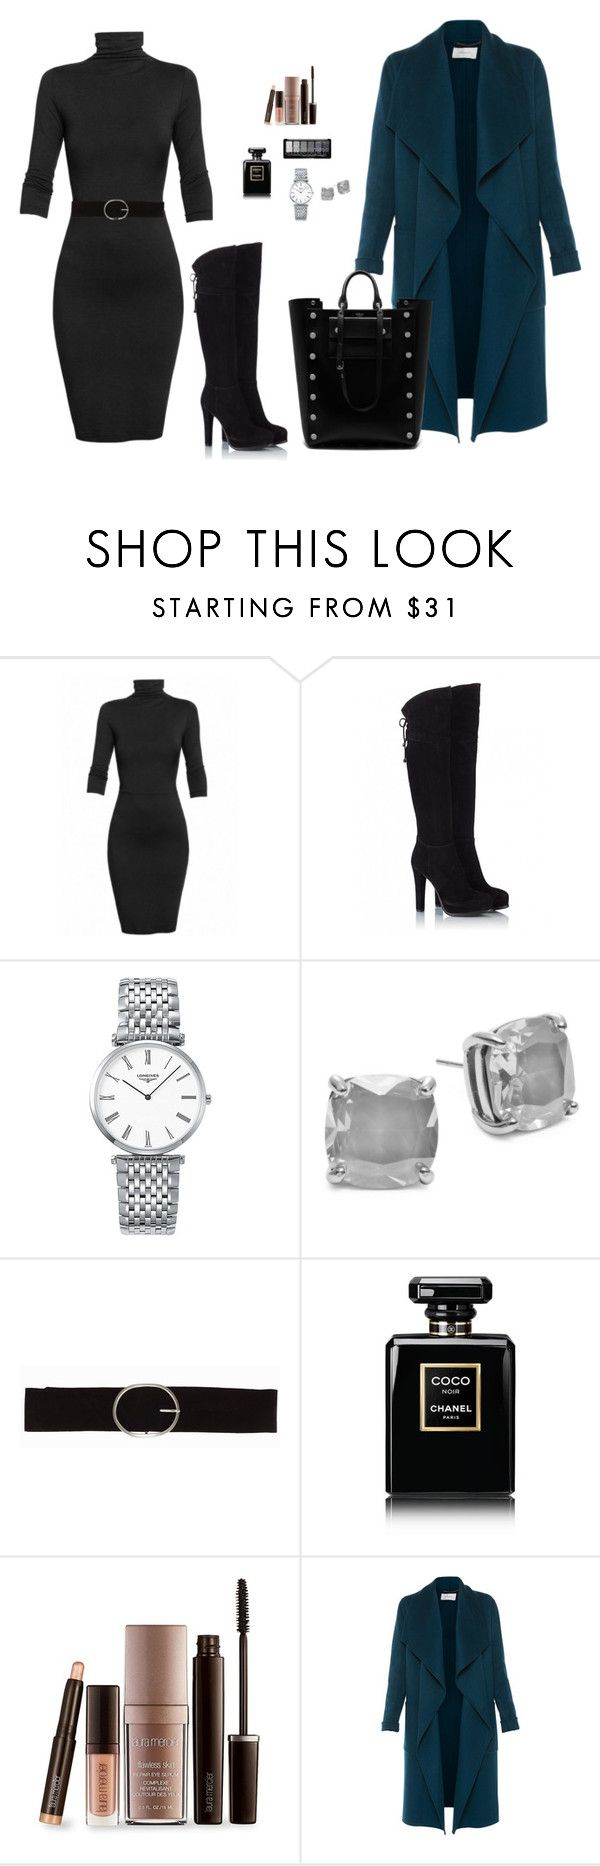 """Office look"" by monika1555 on Polyvore featuring Undress, Fratelli Karida, Longines, Kate Spade, Vero Moda, Chanel, Laura Mercier, L.K.Bennett and Mulberry"